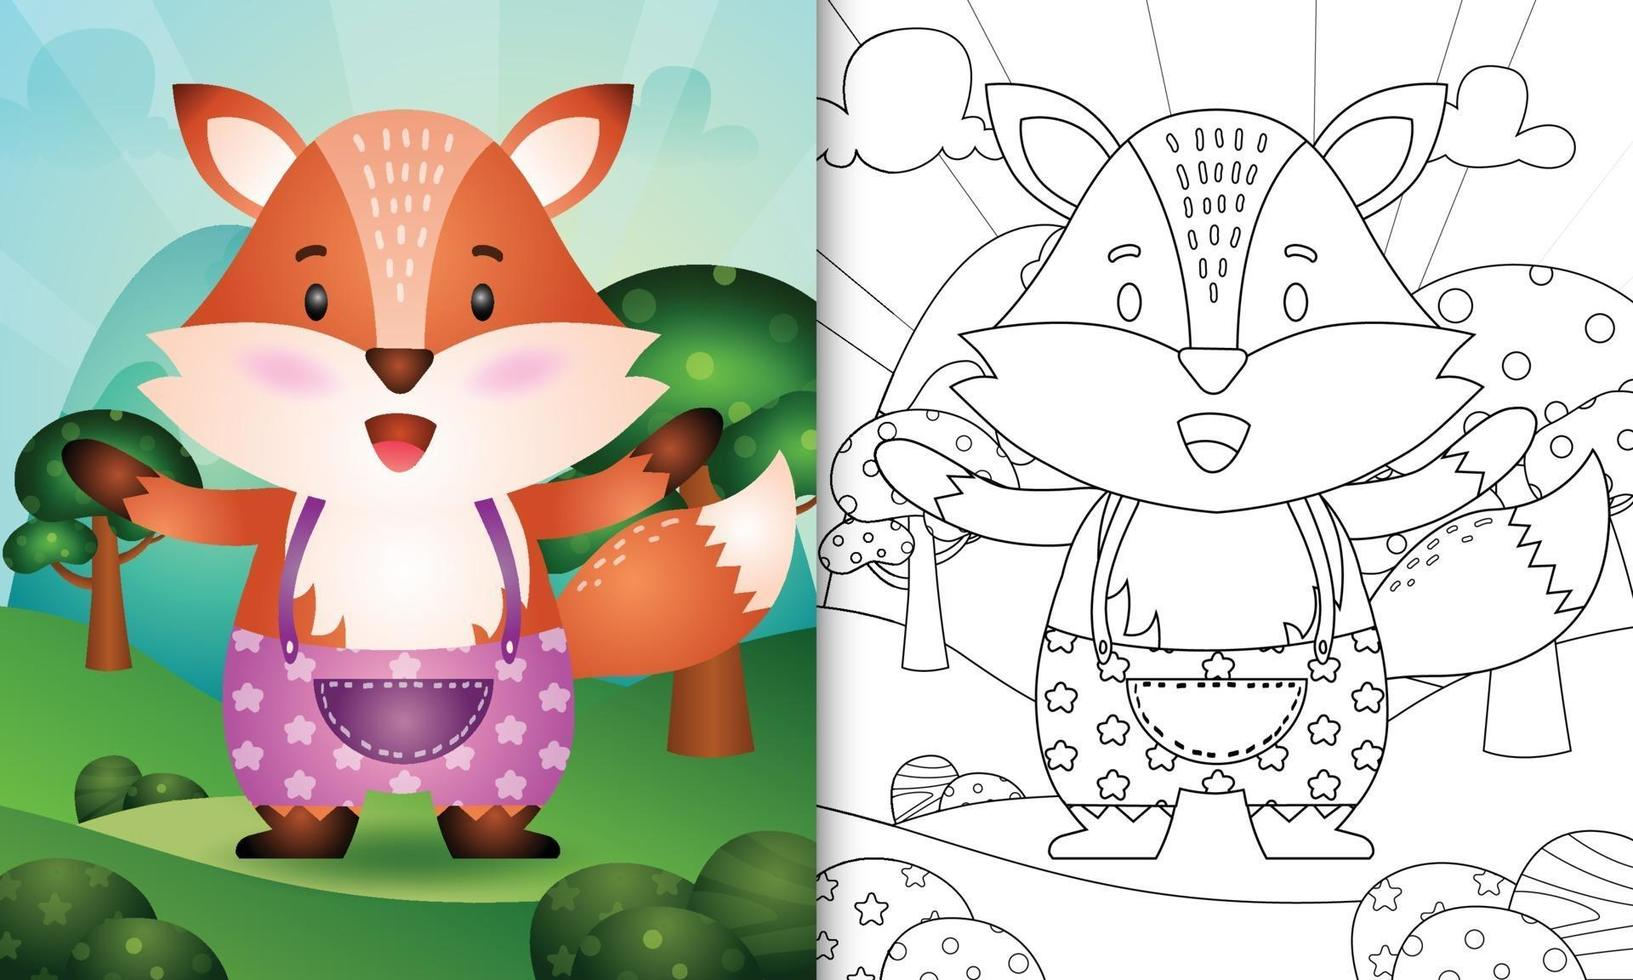 Coloring Book Template For Kids With A Cute Fox Character Illustration Download Free Vectors Clipart Graphics Vector Art